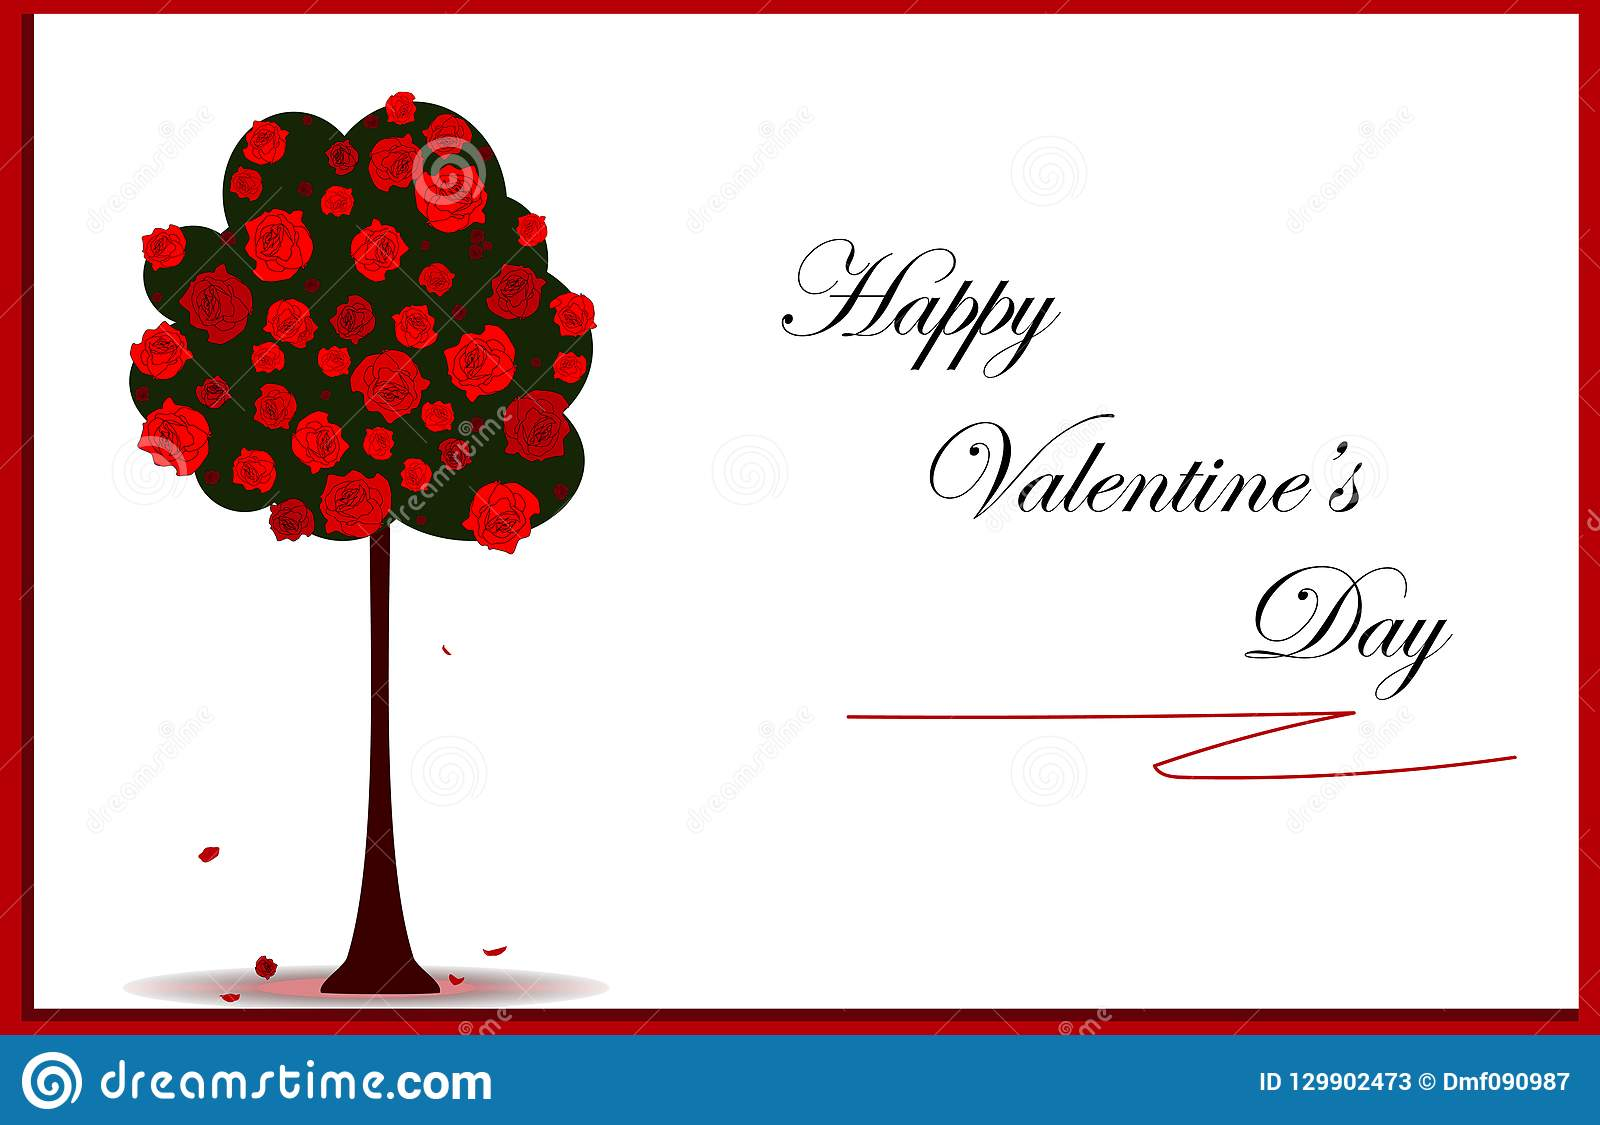 Valentines day card with red roses tree and frame, vector eps 10